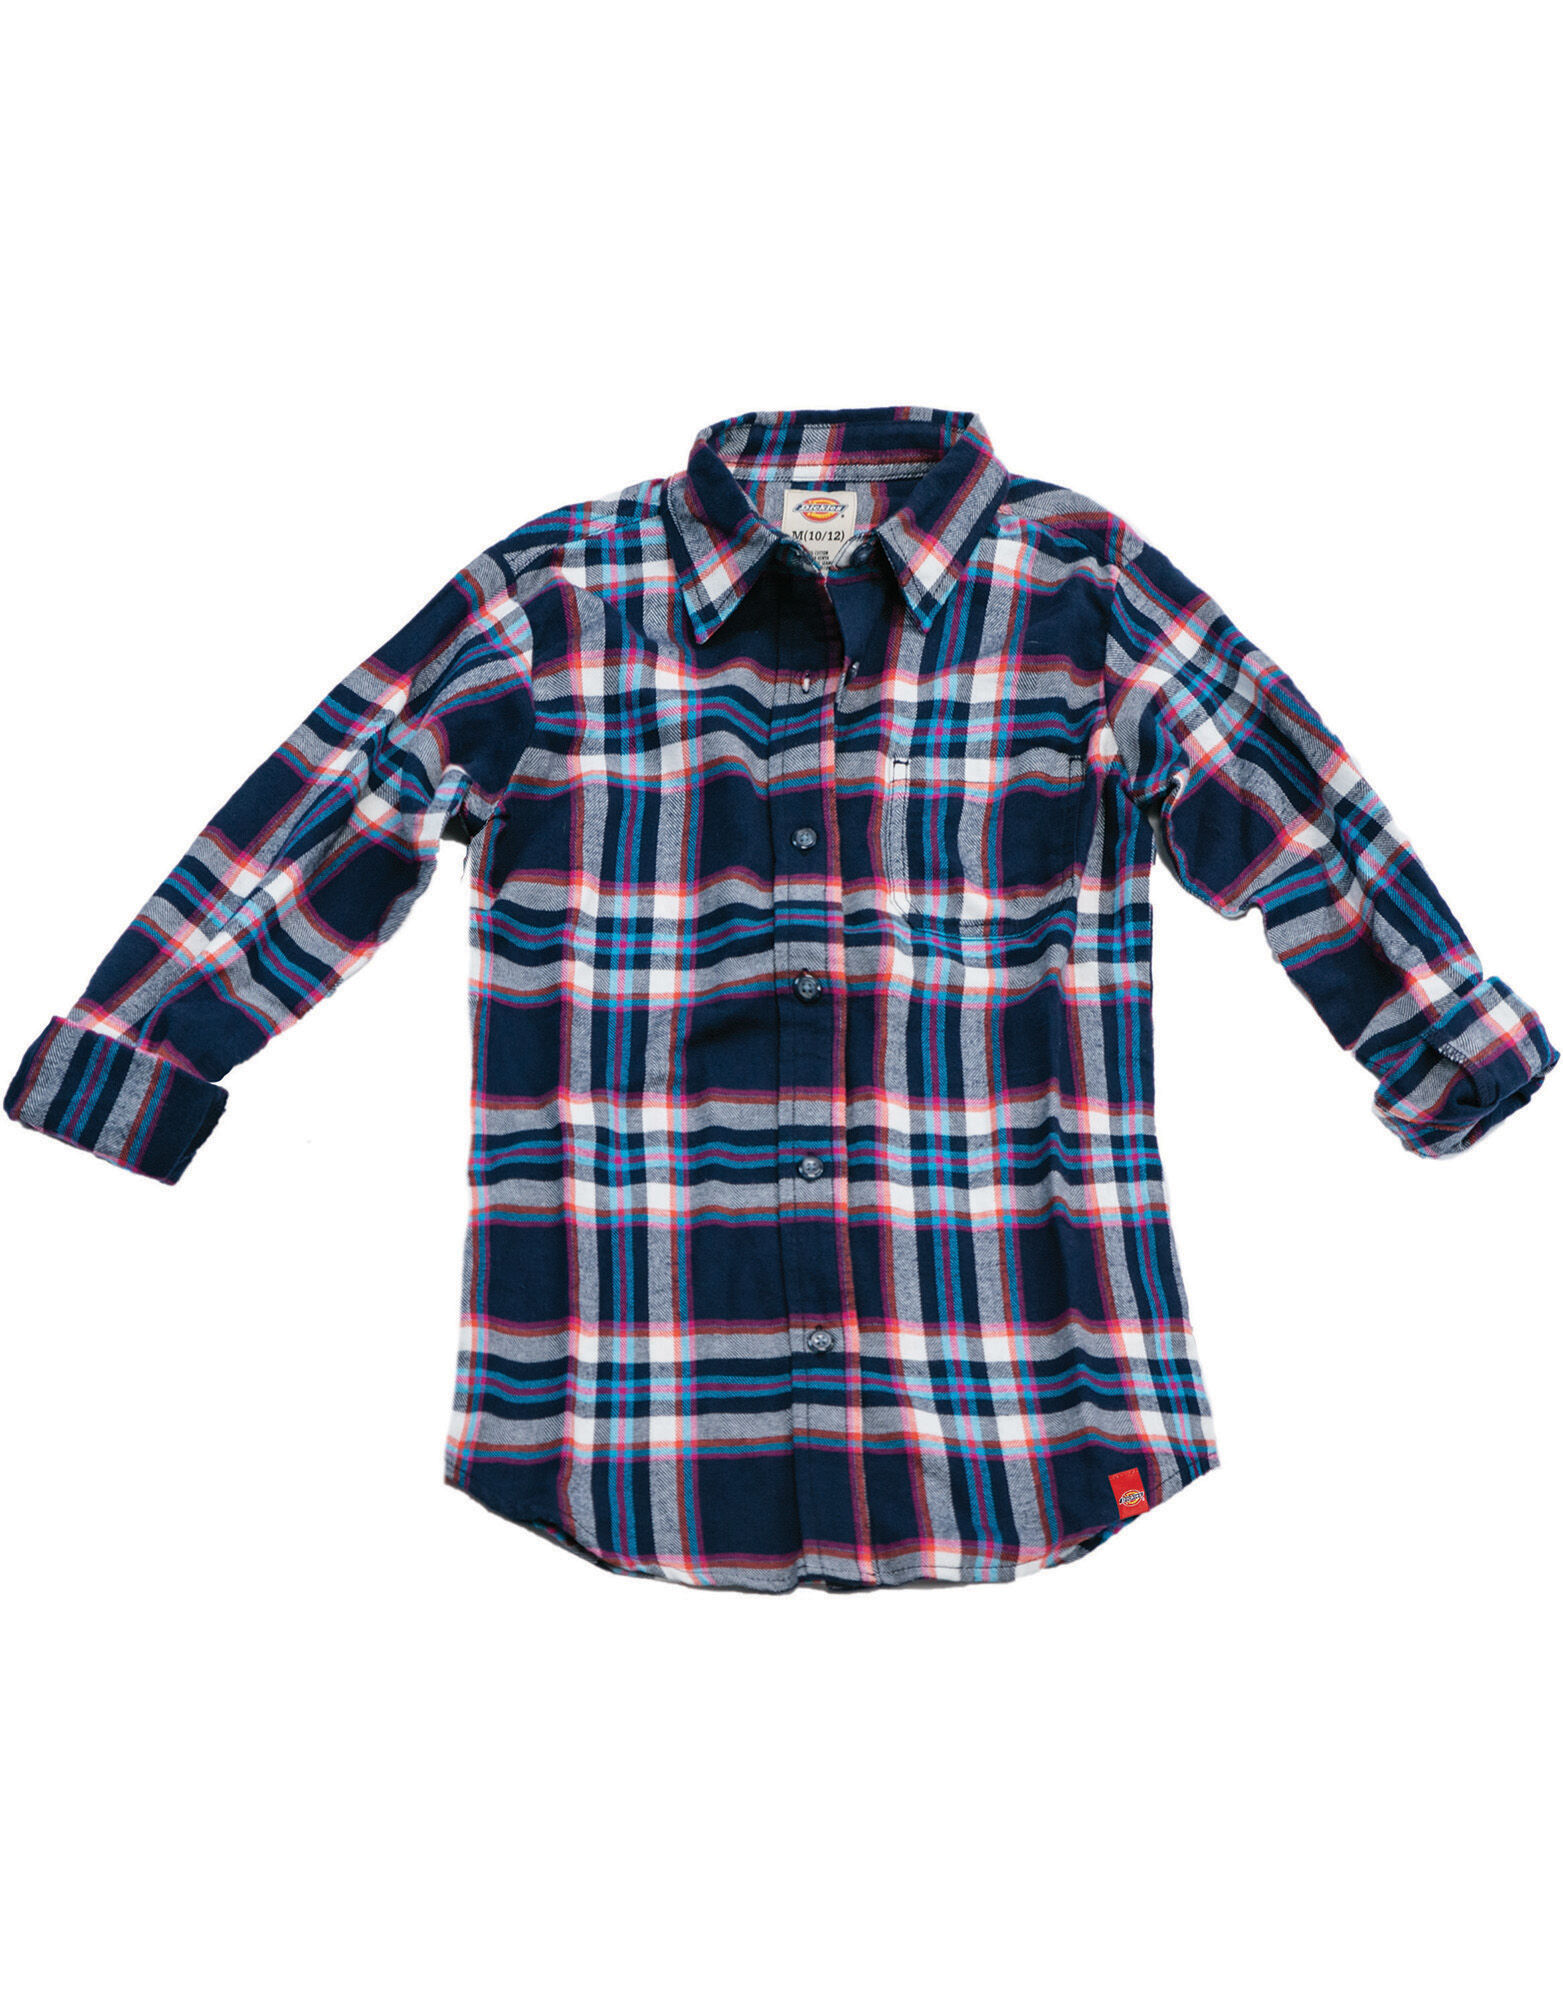 Shop for girl plaid shirt online at Target. Free shipping on purchases over $35 and save 5% every day with your Target REDcard.